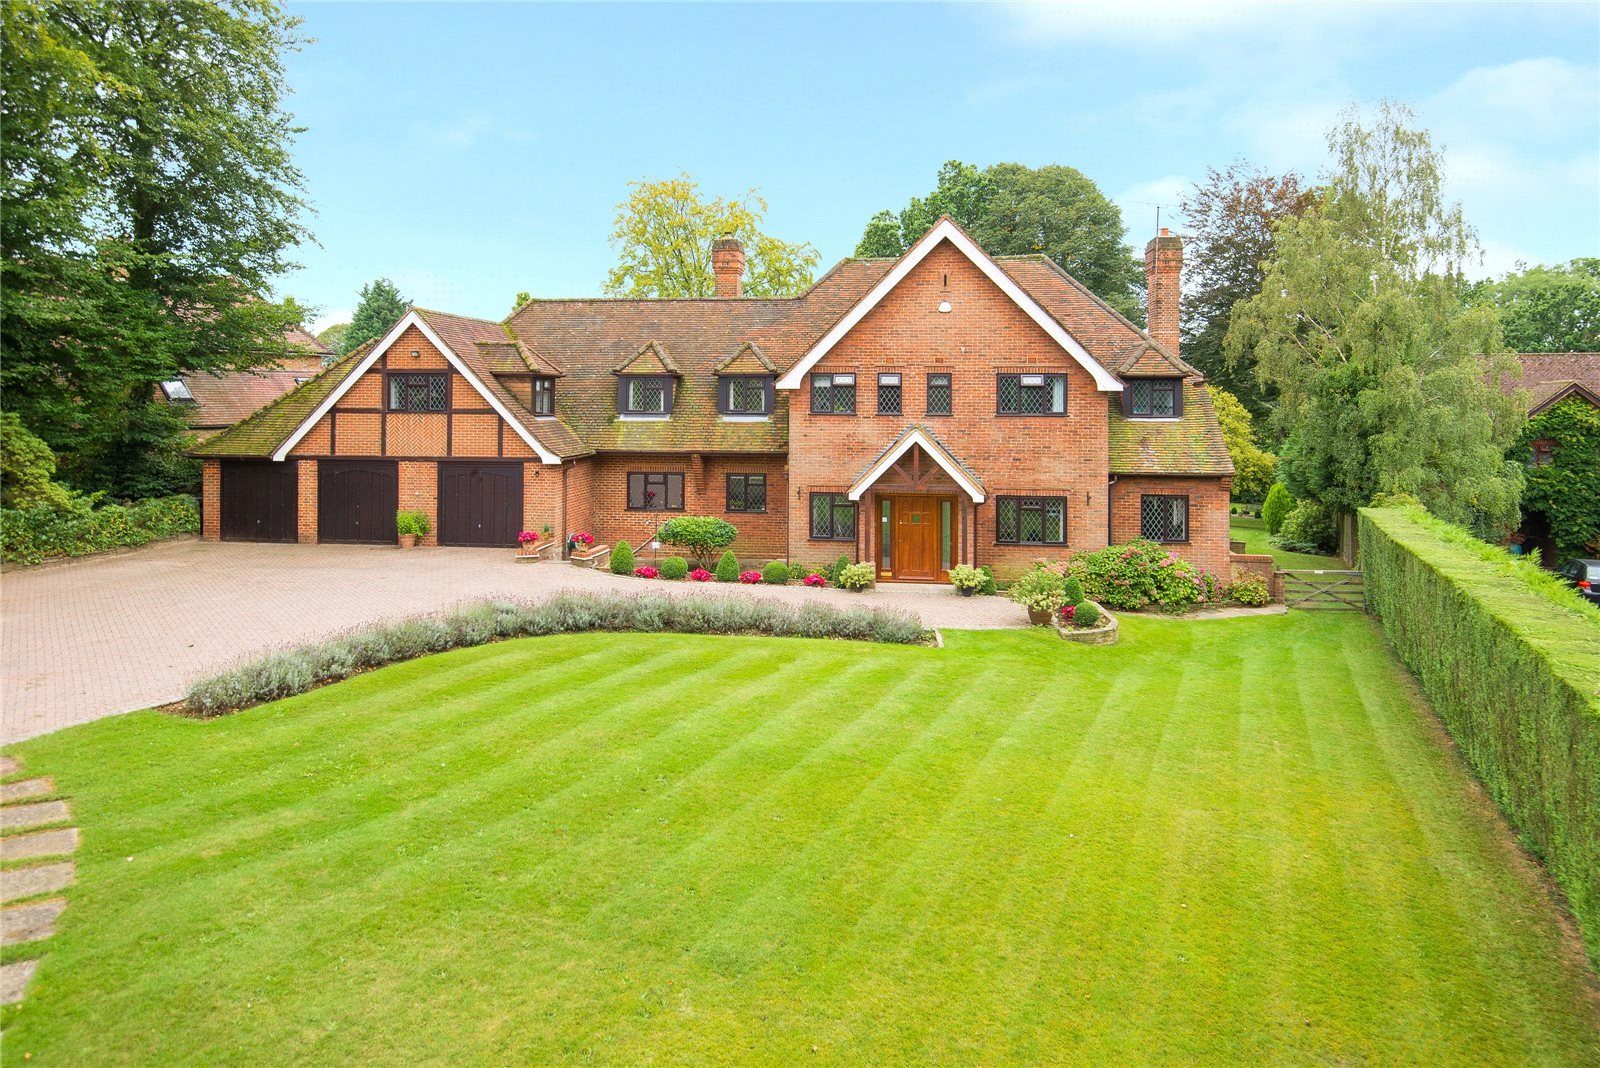 Single Family Home for Sale at Ellis Avenue, Chalfont Heights, Buckinghamshire, SL9 Buckinghamshire, England